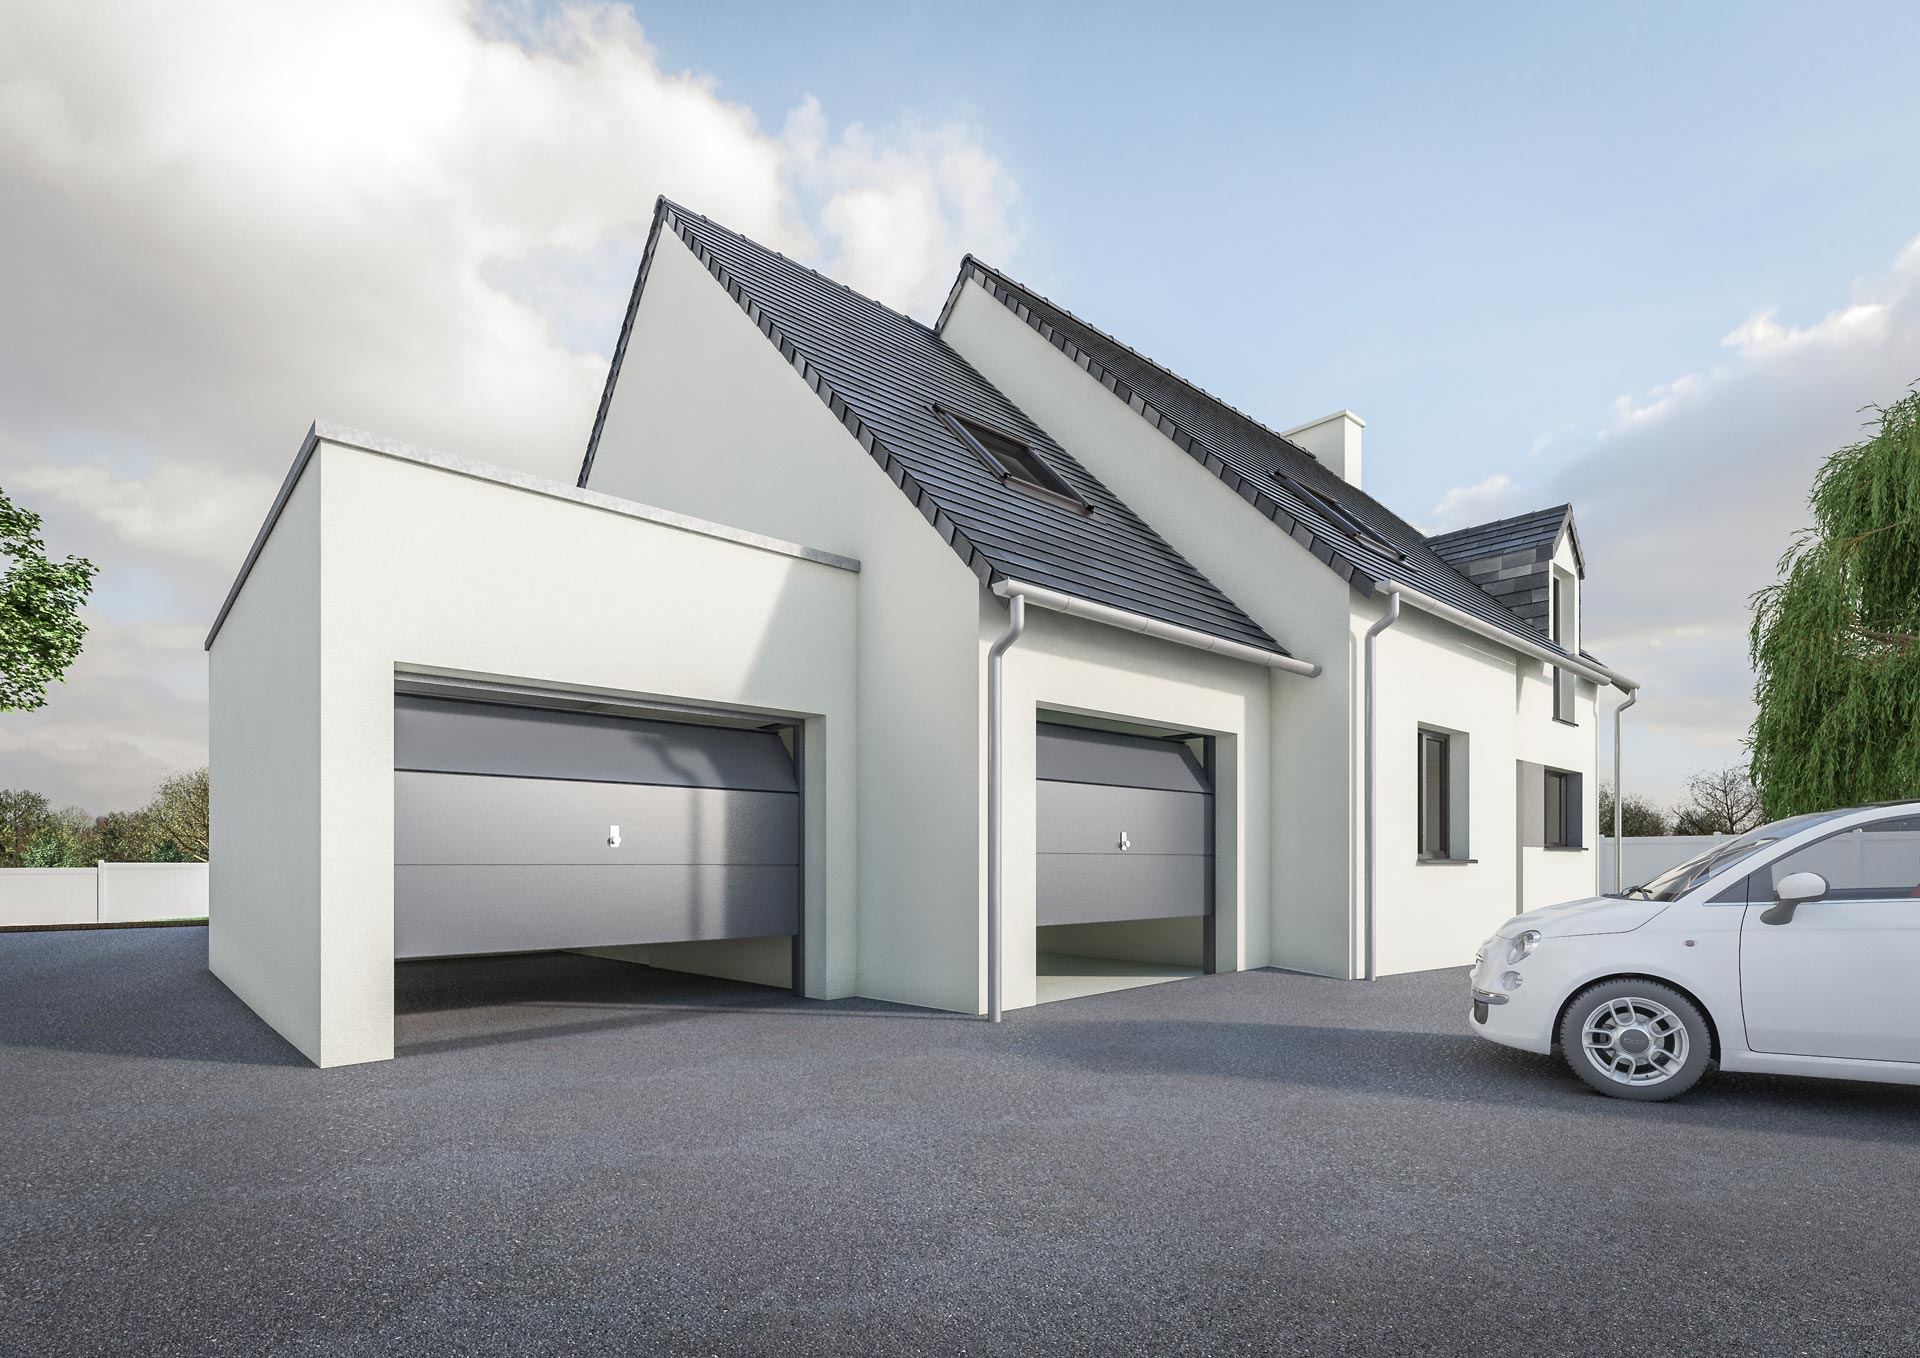 top gallery of extension garage toit plat petit prix modle